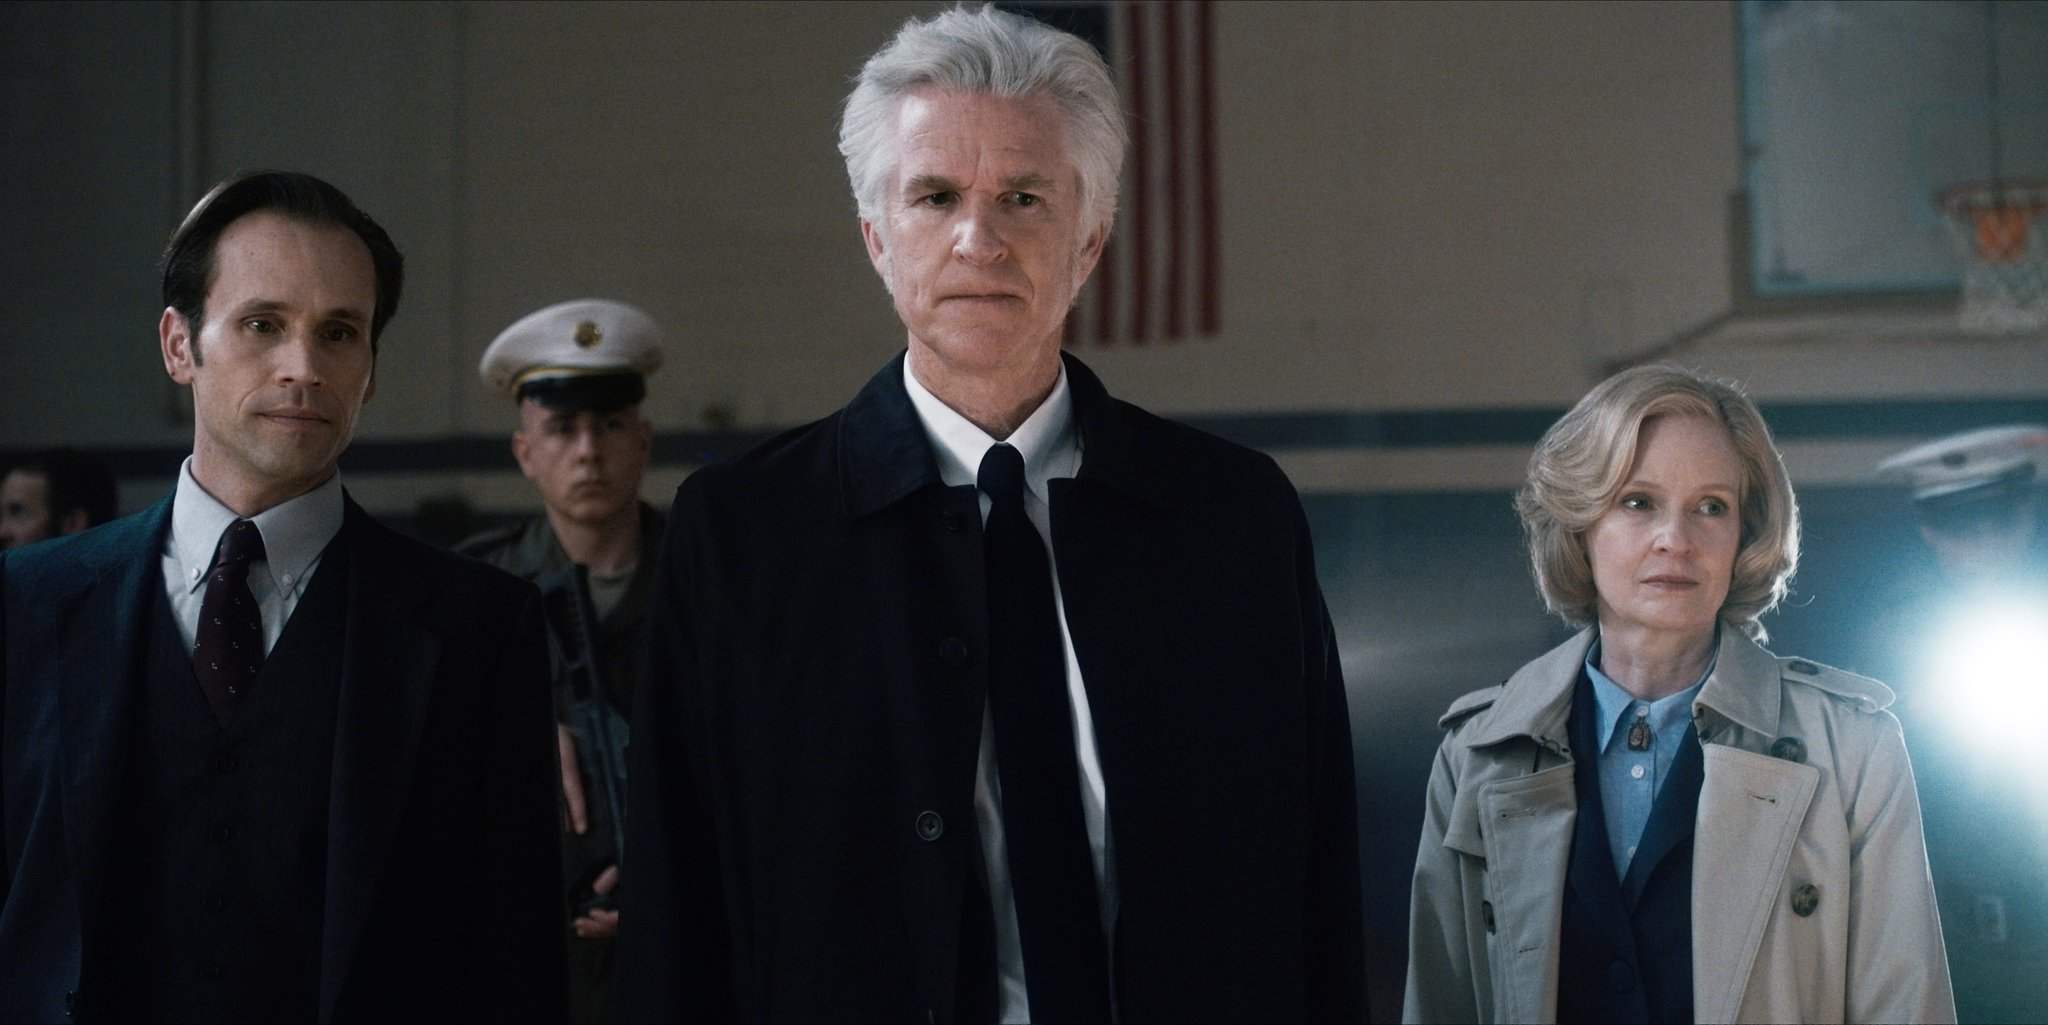 Matthew Modine as Dr Brenner in Stranger Things.